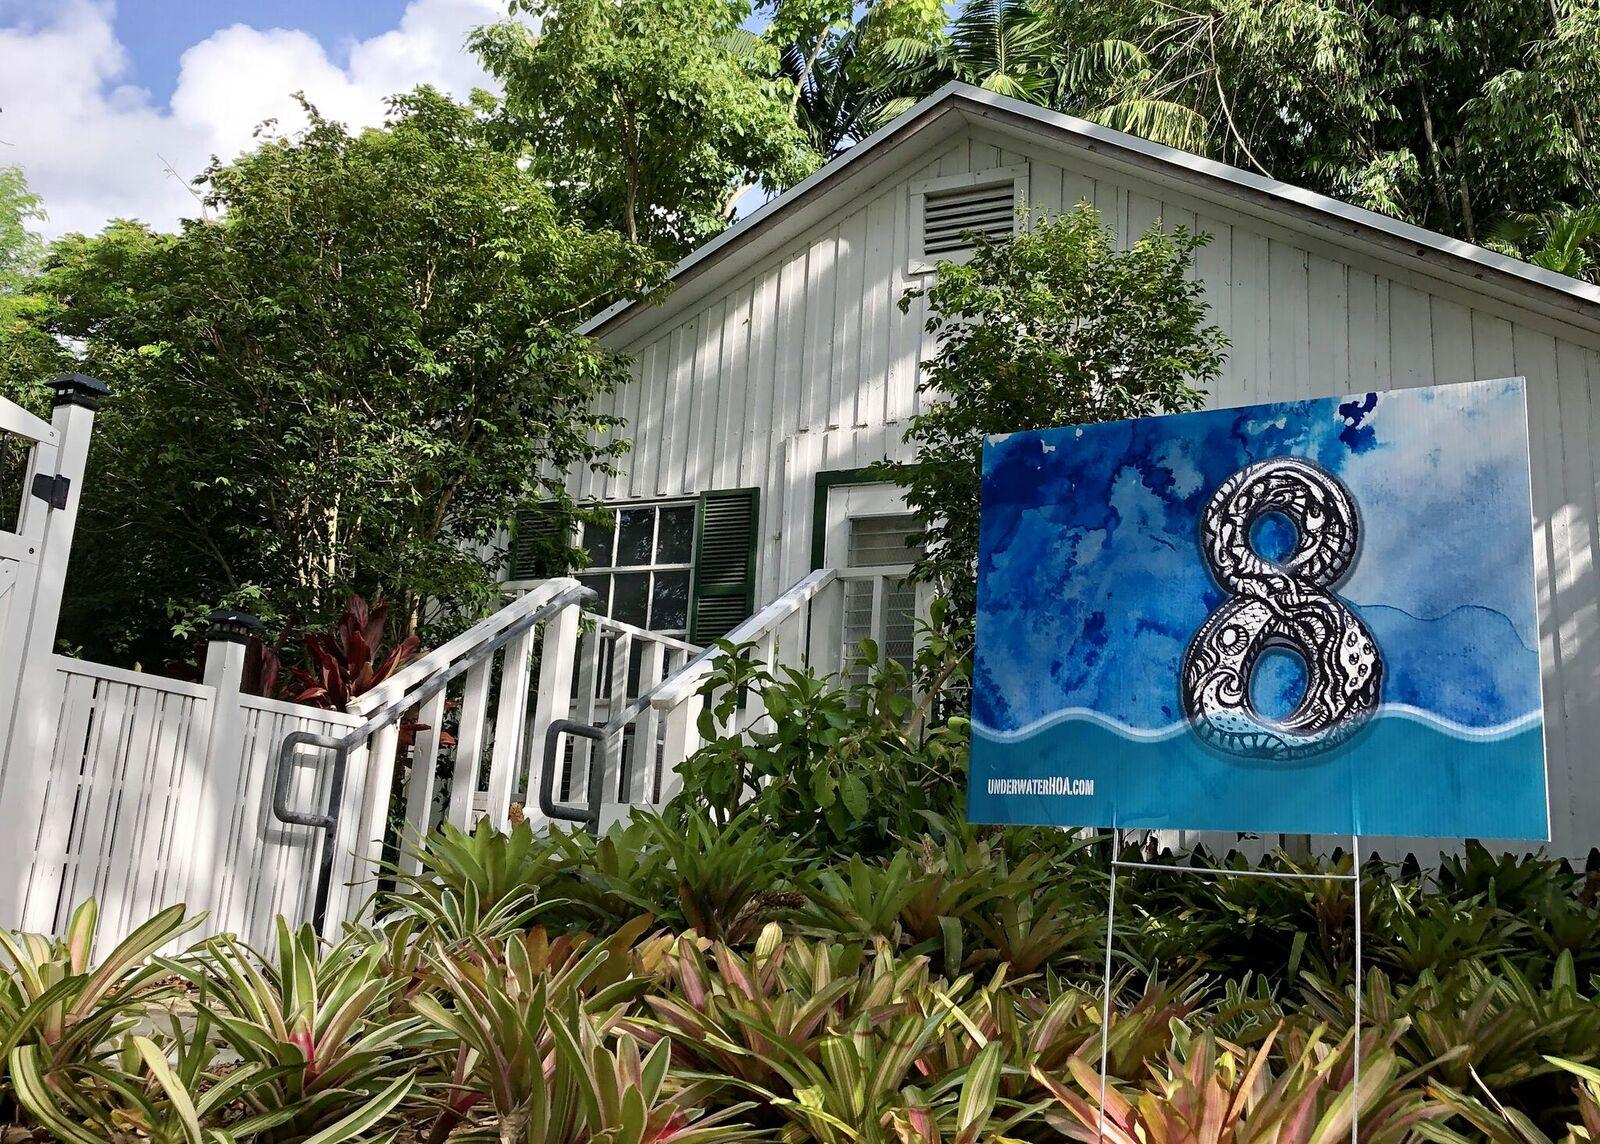 Pinecrest Is Getting An Underwater Homeowners Association To Help